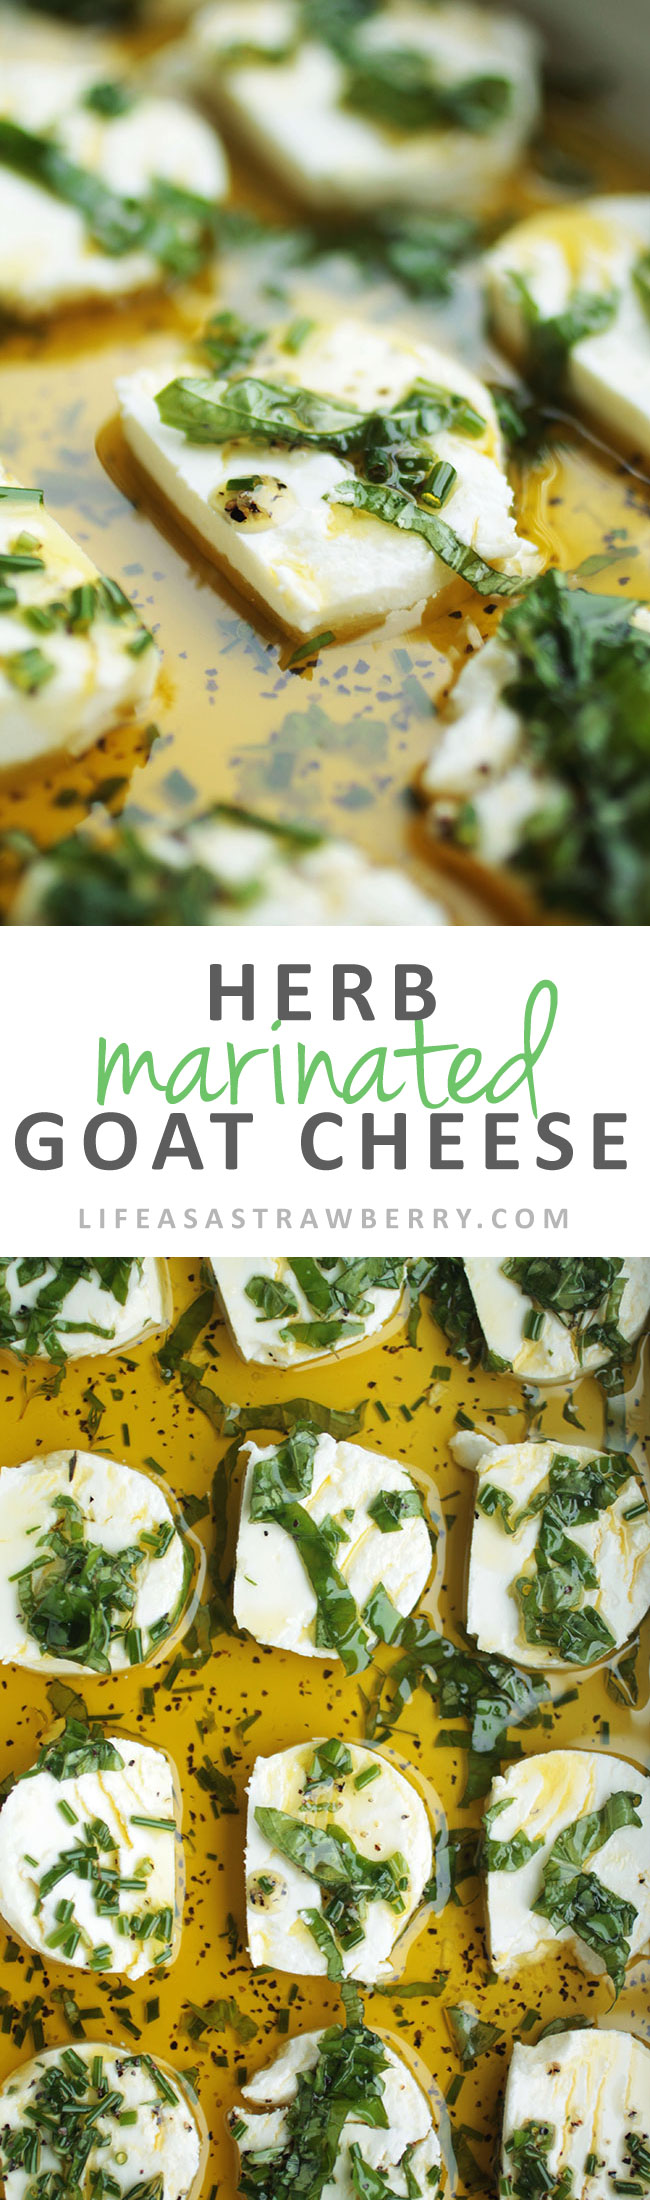 Herb Marinated Goat Cheese - This easy vegetarian appetizer is wonderful on crostini! A flavorful herb marinade covers slices of tangy goat cheese. Vegetarian.